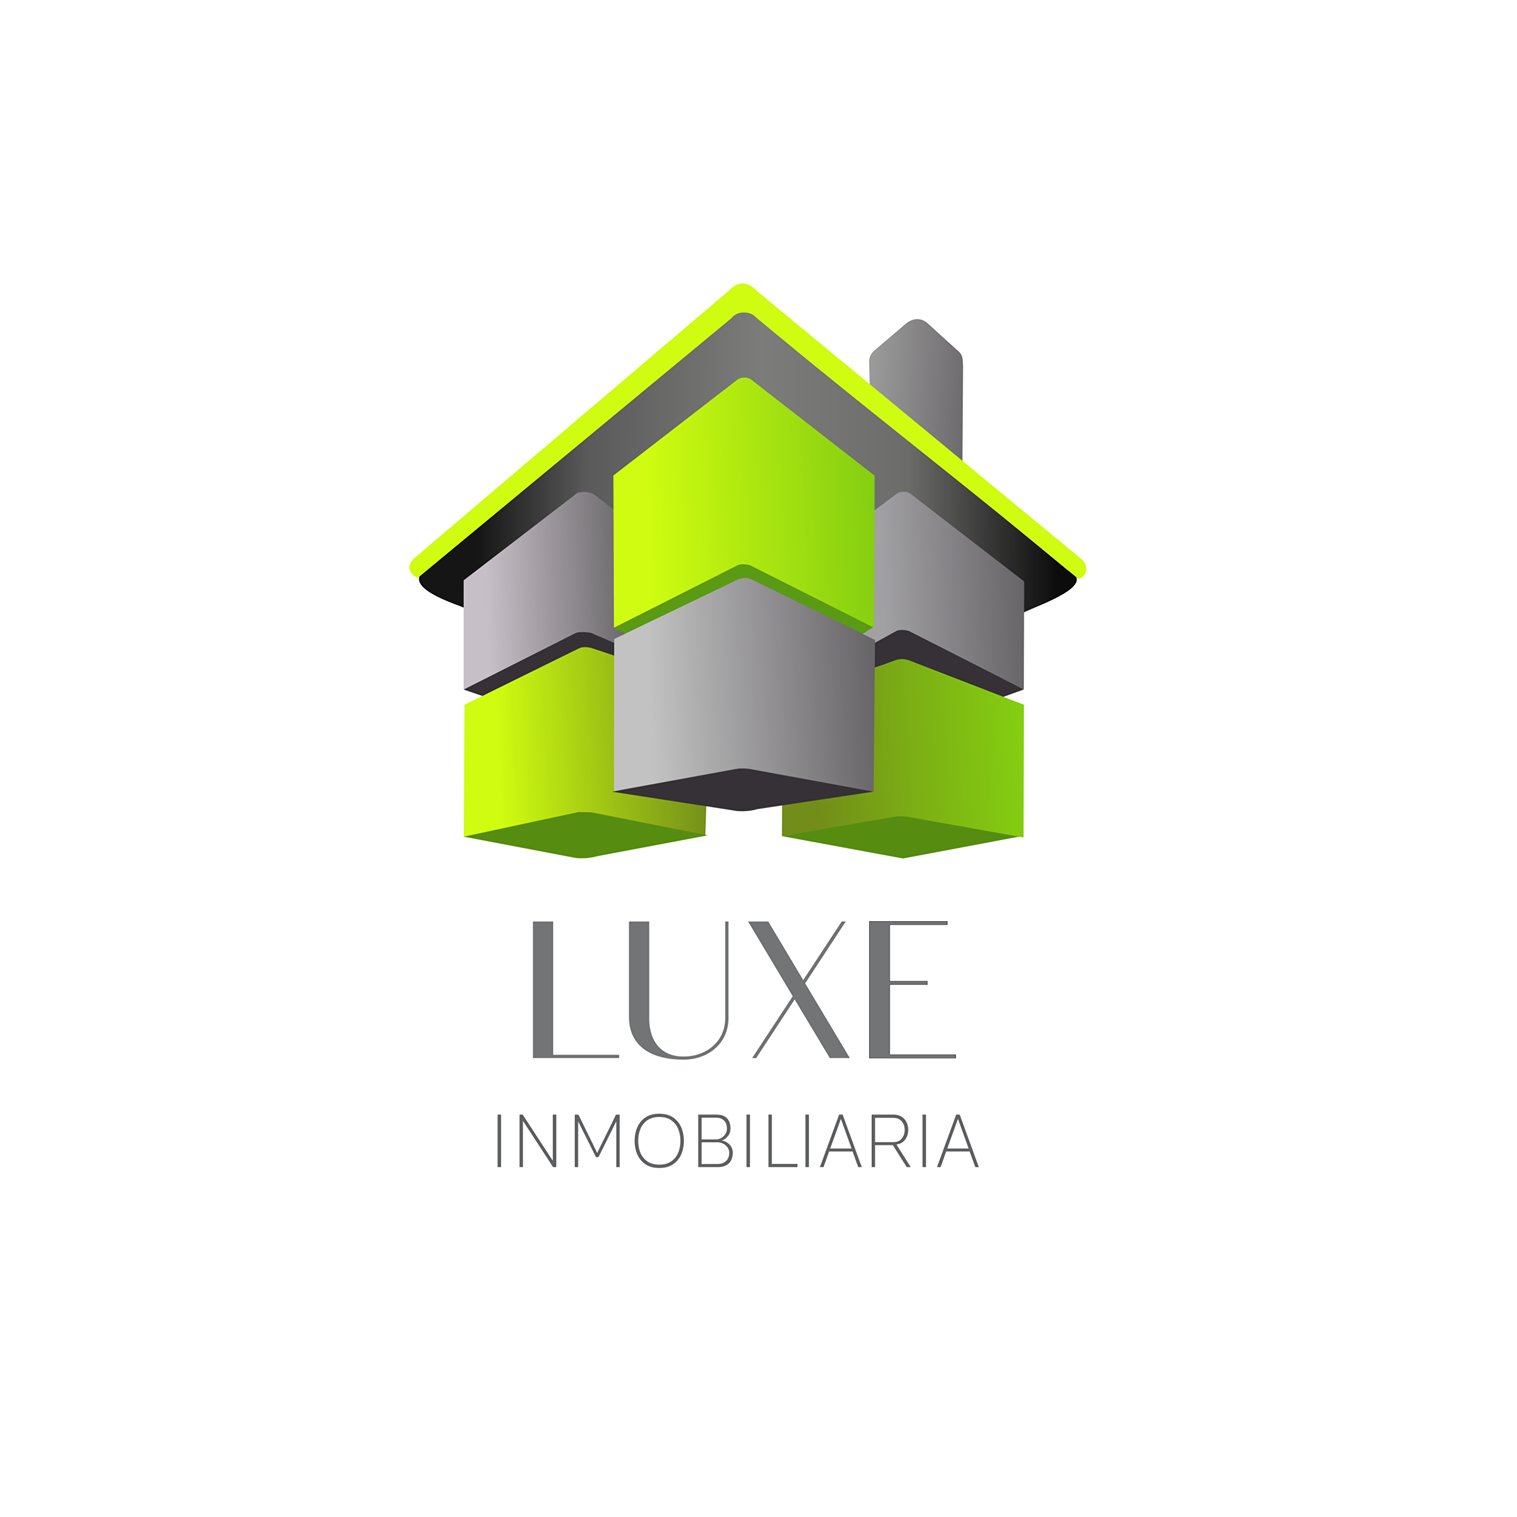 LOGO_NUEVO_LUXE.png